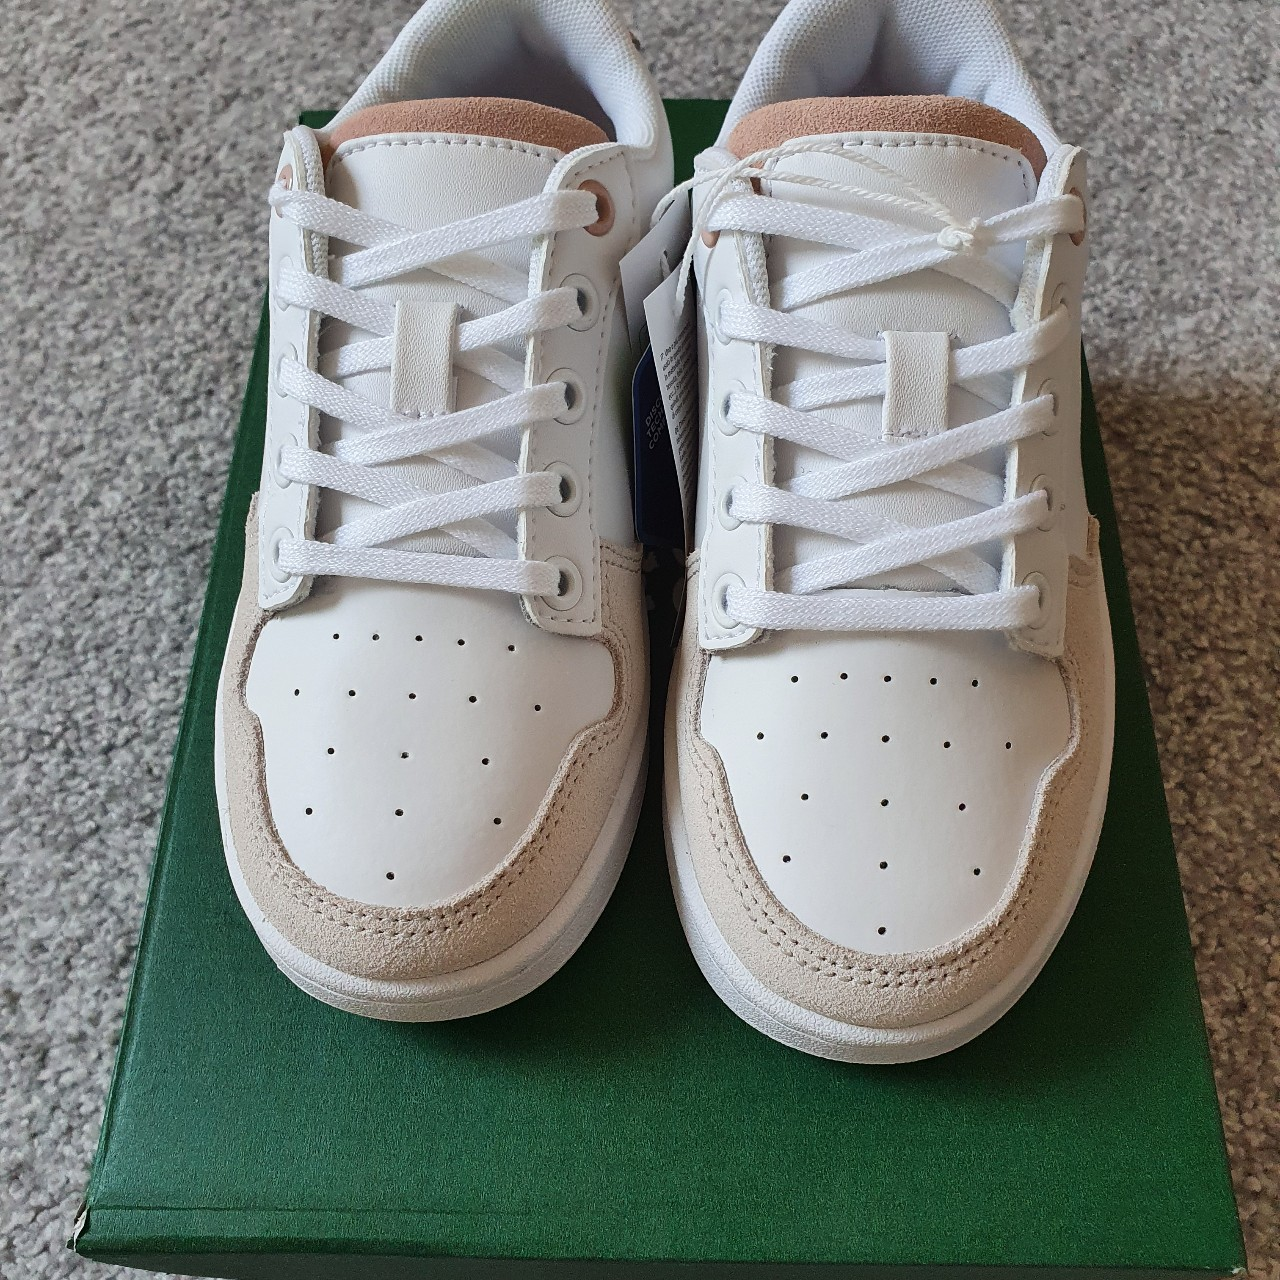 Girls lacoste trainers Brand new in box